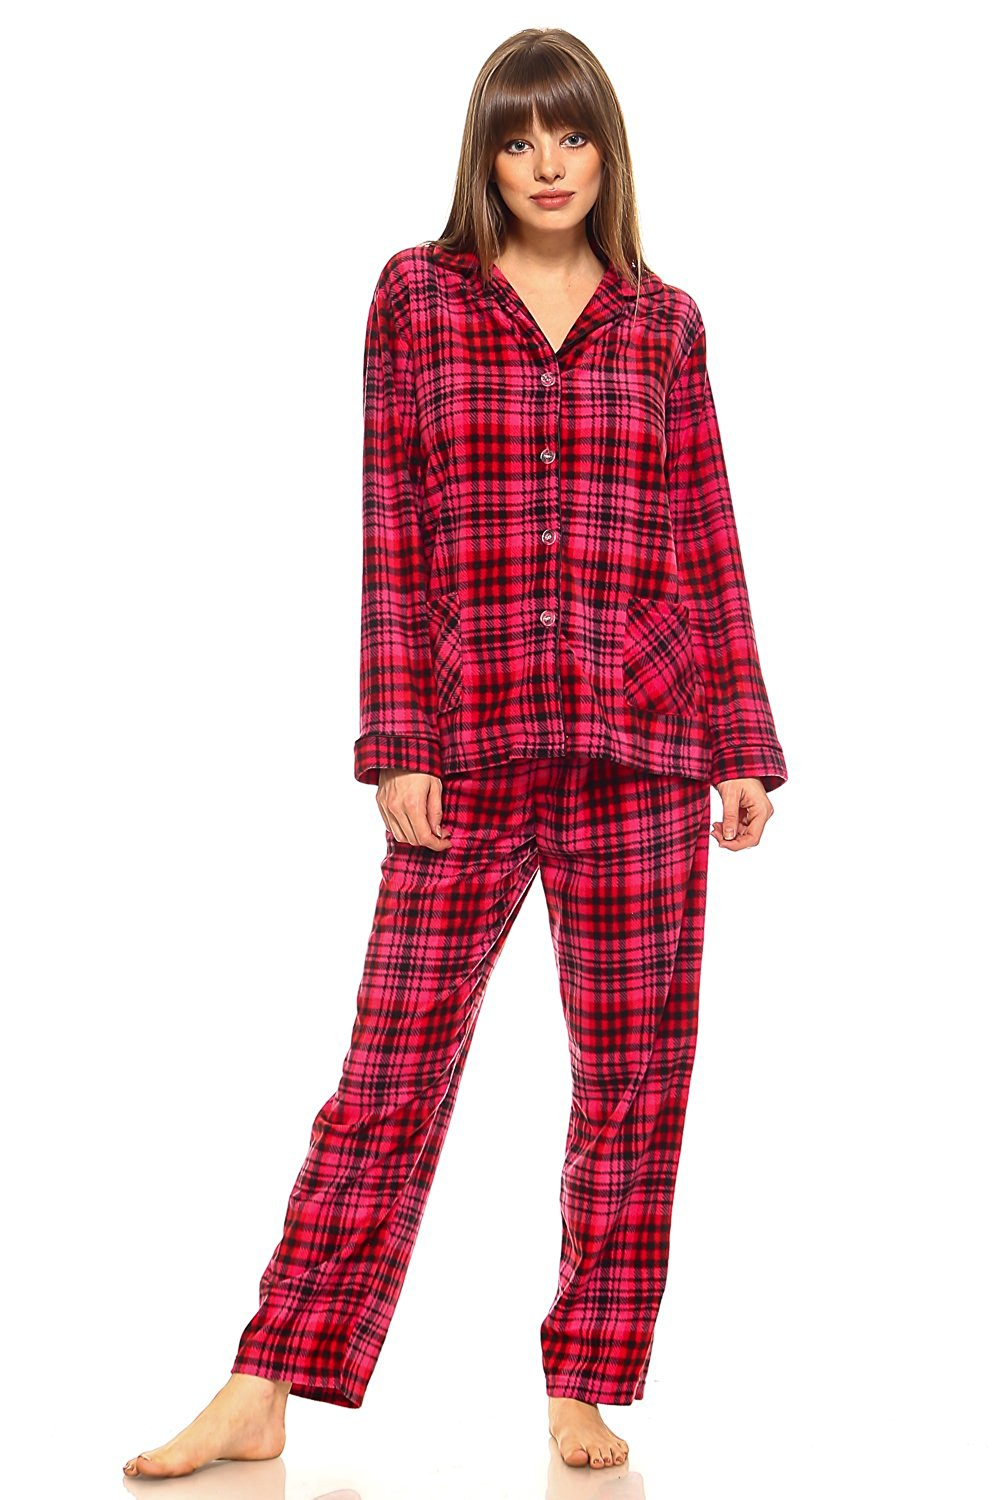 39ffb5647897 Get Quotations · MarCielo Womens Fleece Pajamas